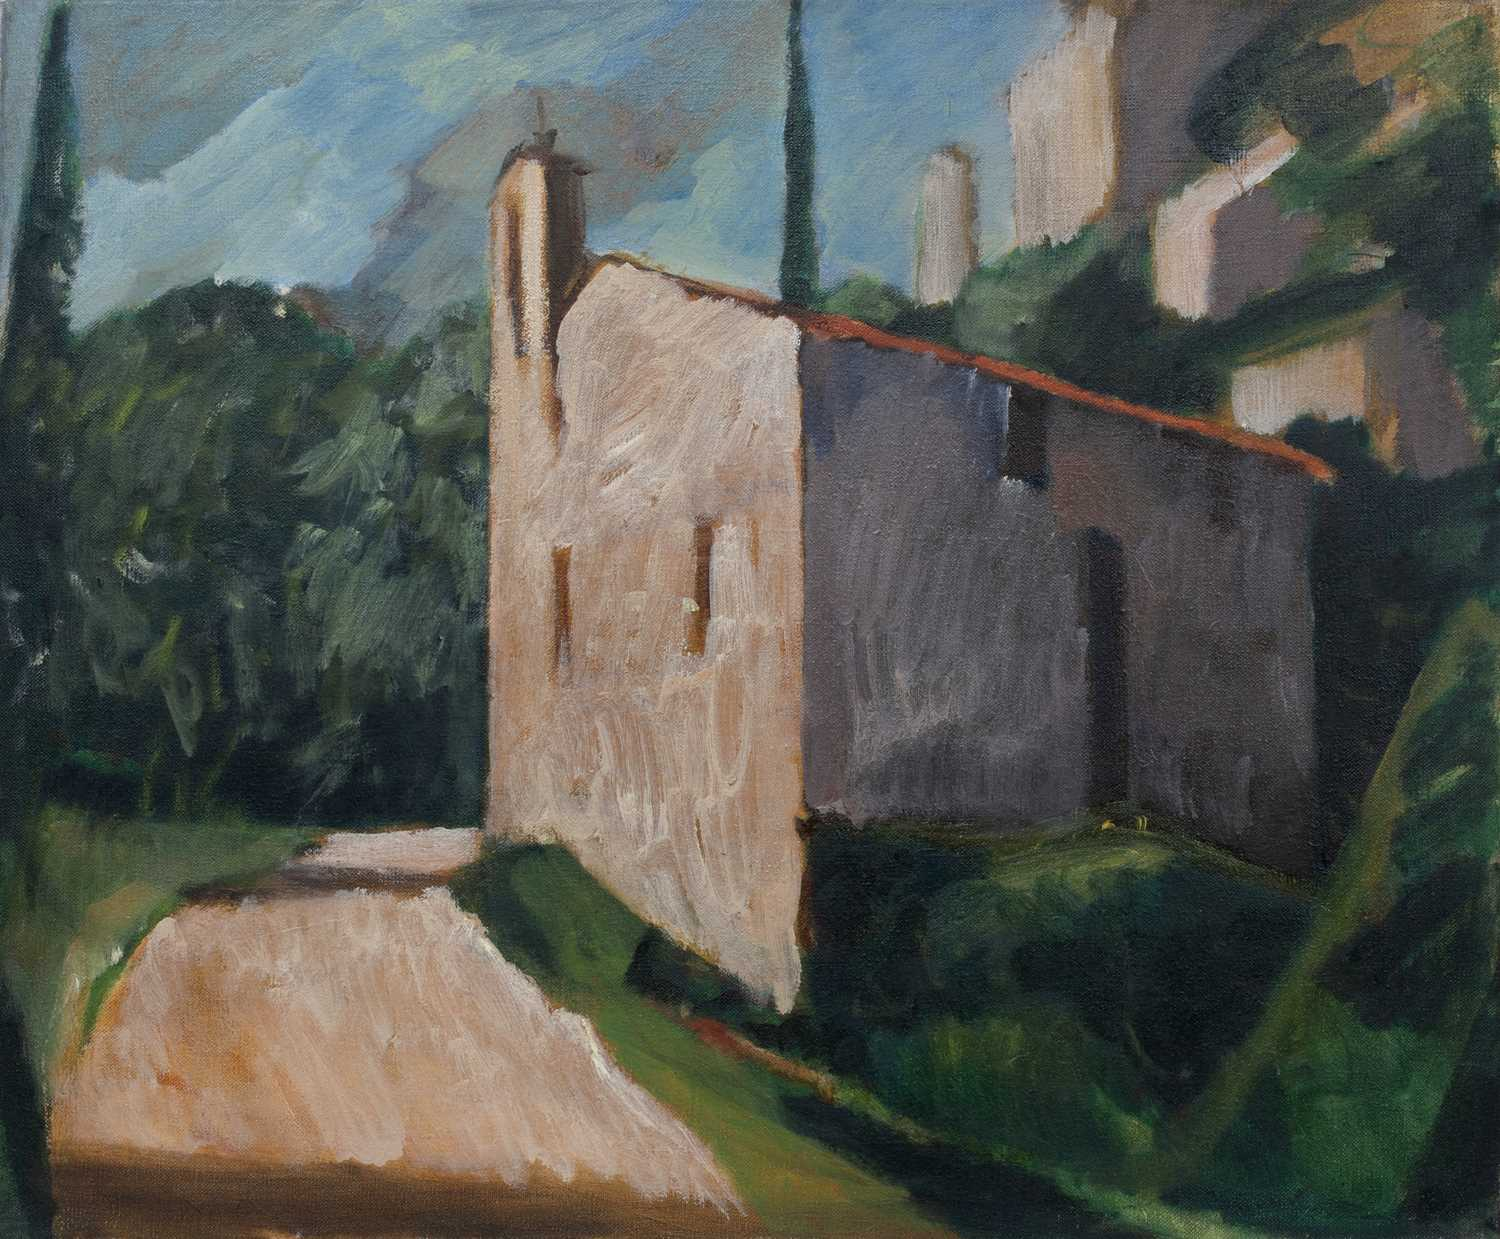 Bernard Kay (1927-2021) Five landscape and village studies all unsigned oil on canvas largest 71 x - Image 6 of 13